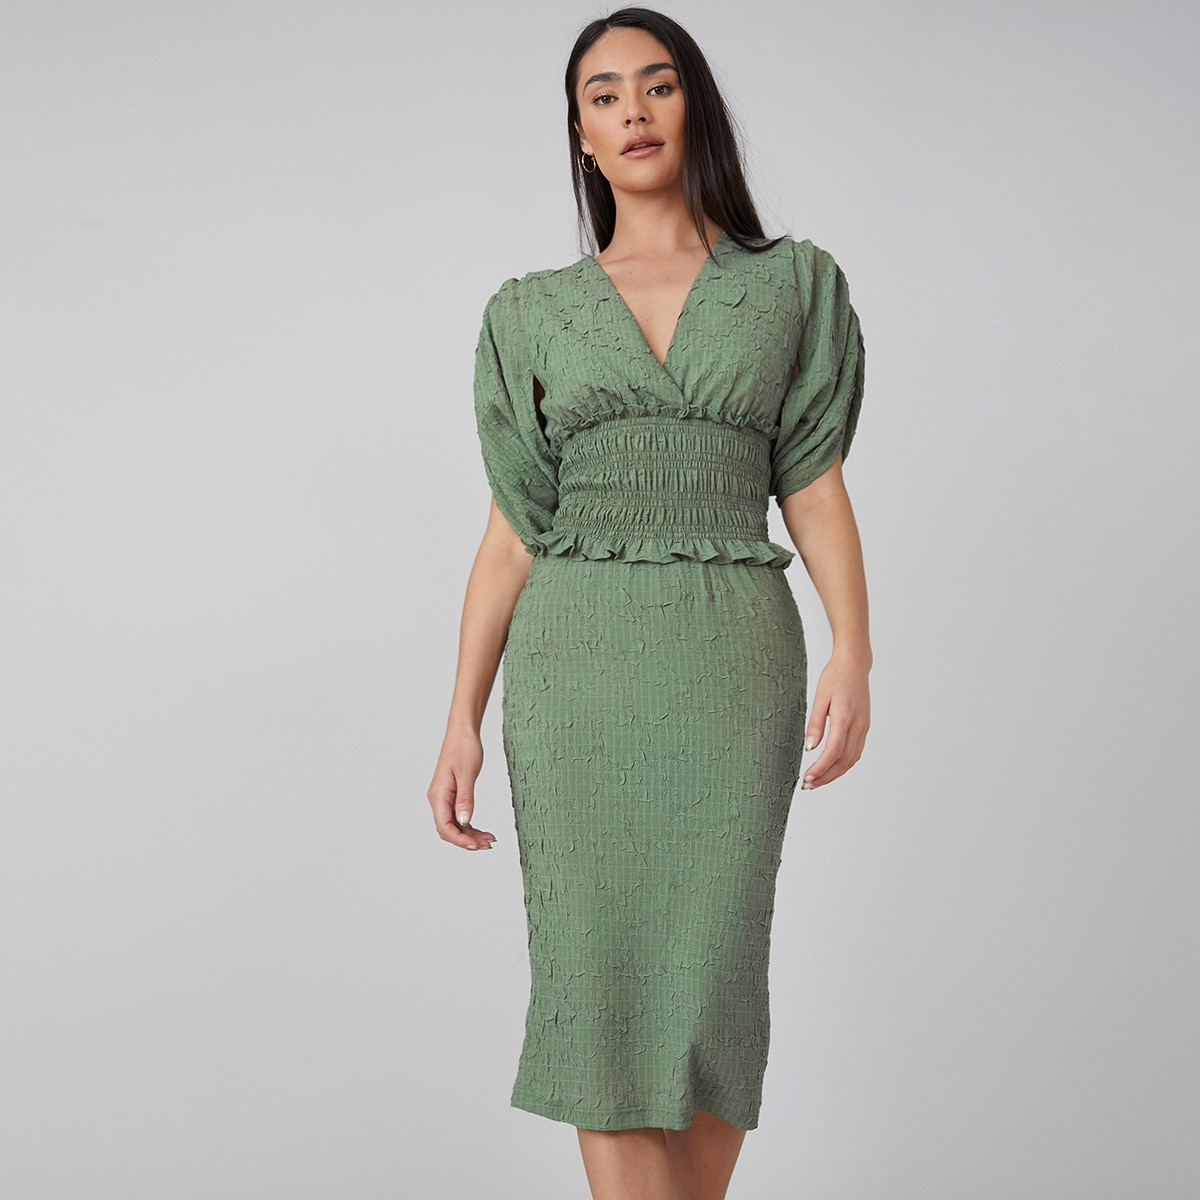 100% VISCOSE TEXTURED FITTED DRESS